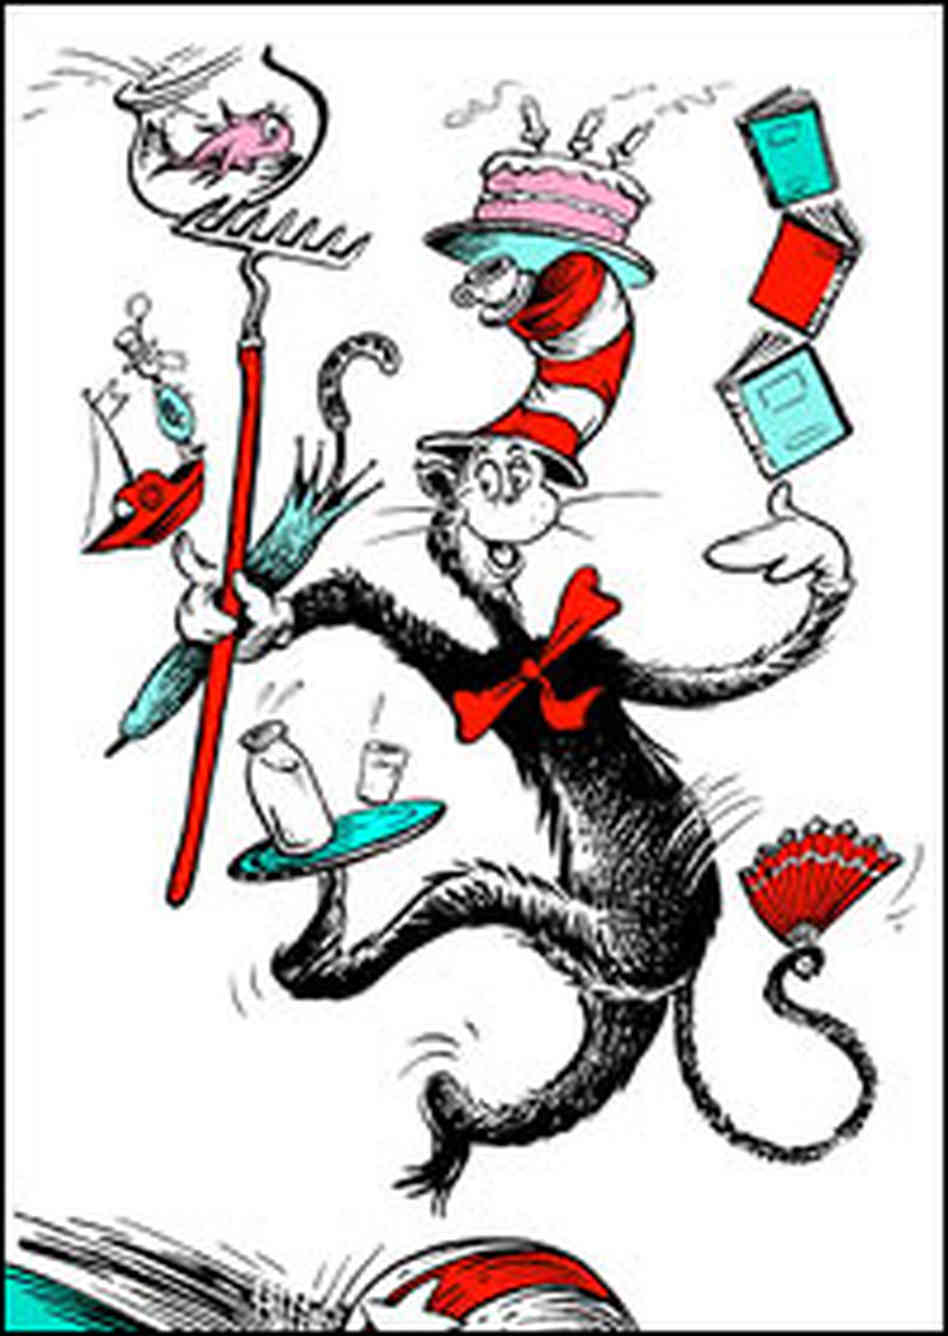 The Cat from <cite>The Cat in the Hat</cite>